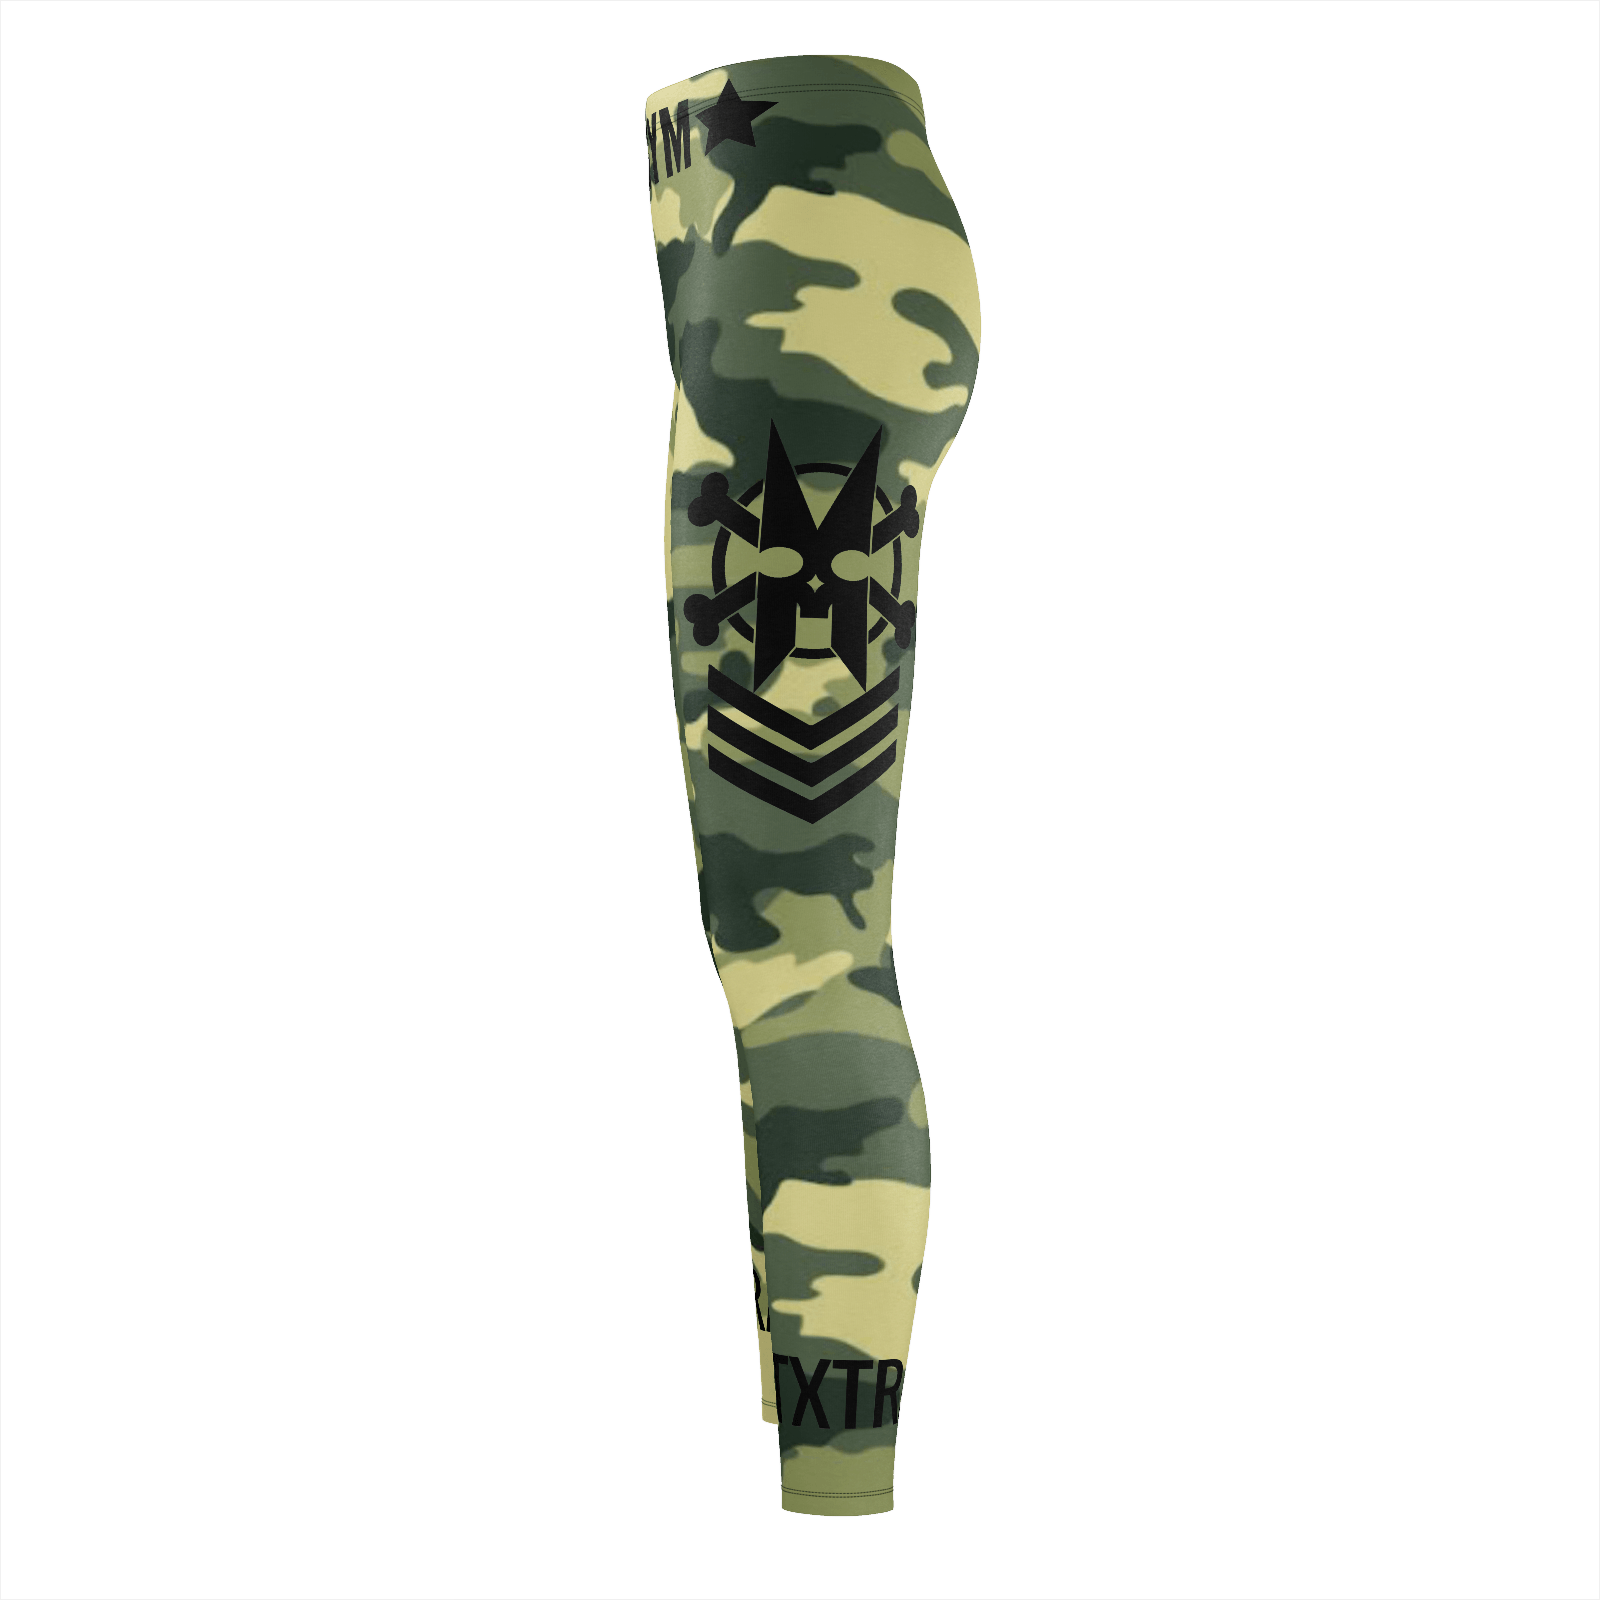 XMGYM BONES CAMO WARFIGHTER LEGGINGS